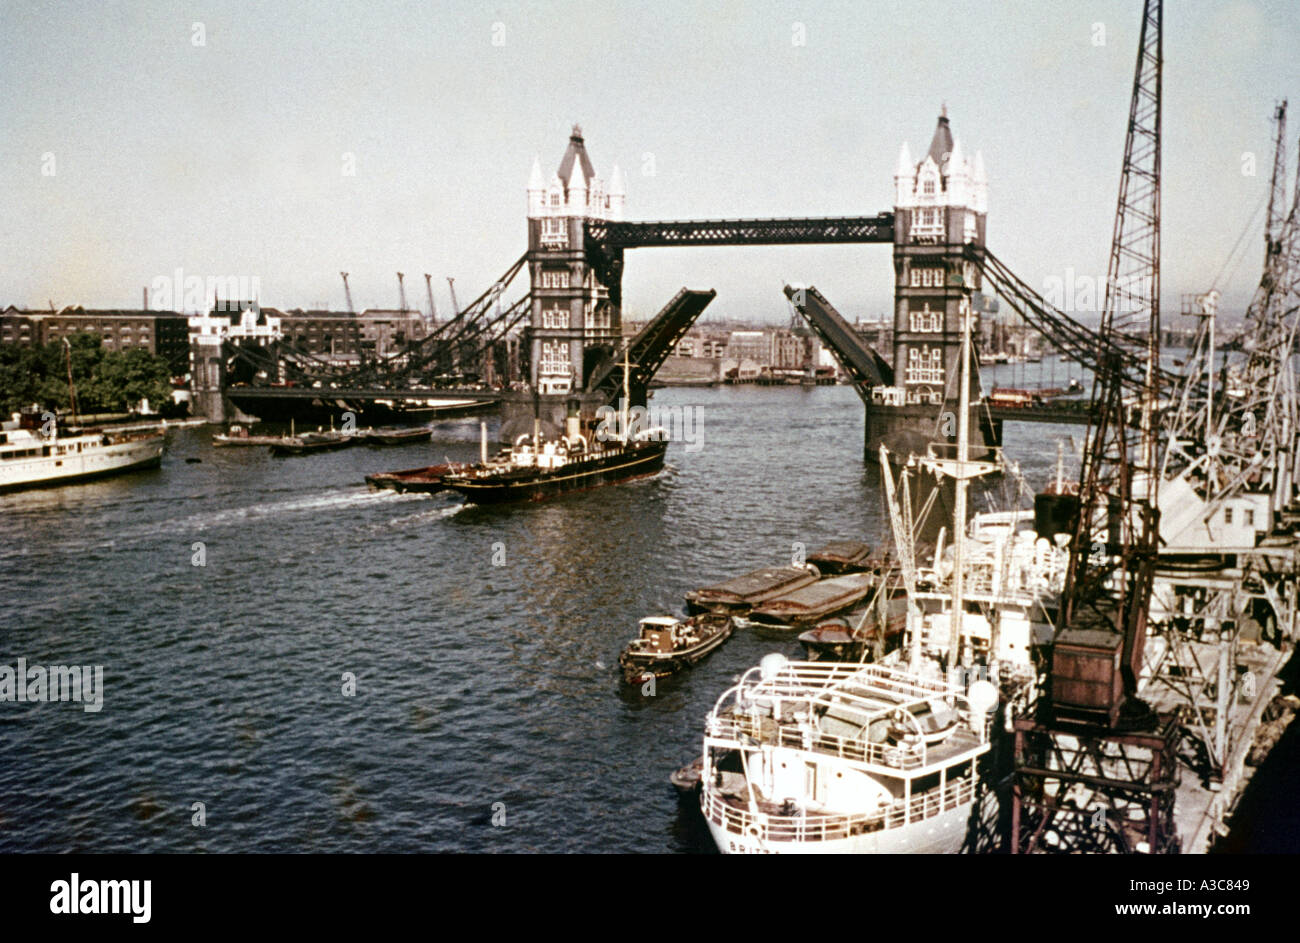 1950 s early 1960 s view of Tower Bridge london - Stock Image